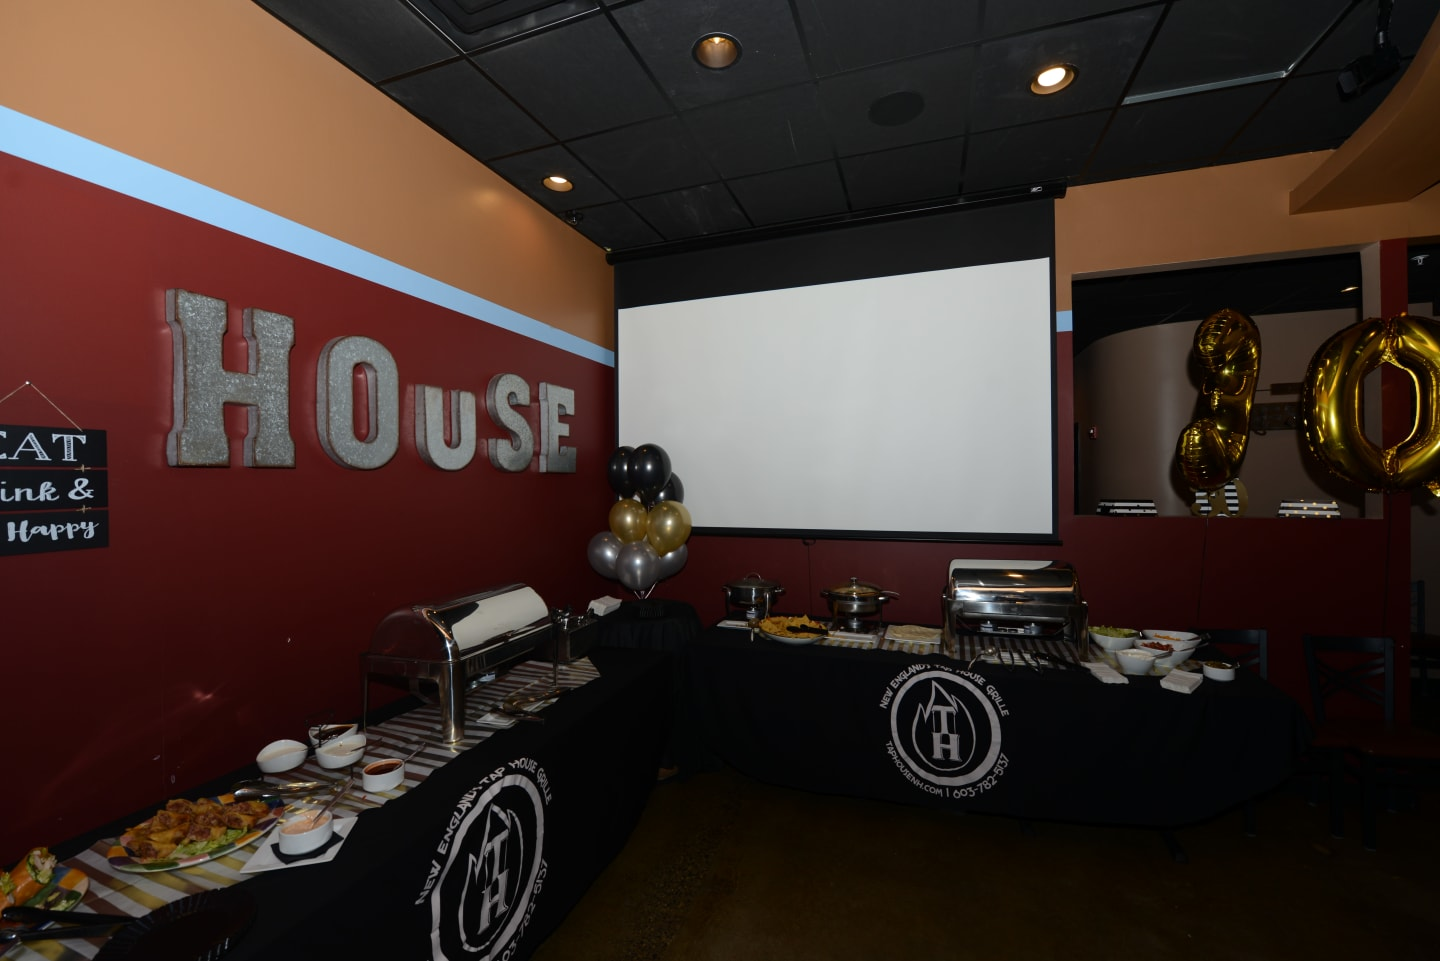 new england tap house catering